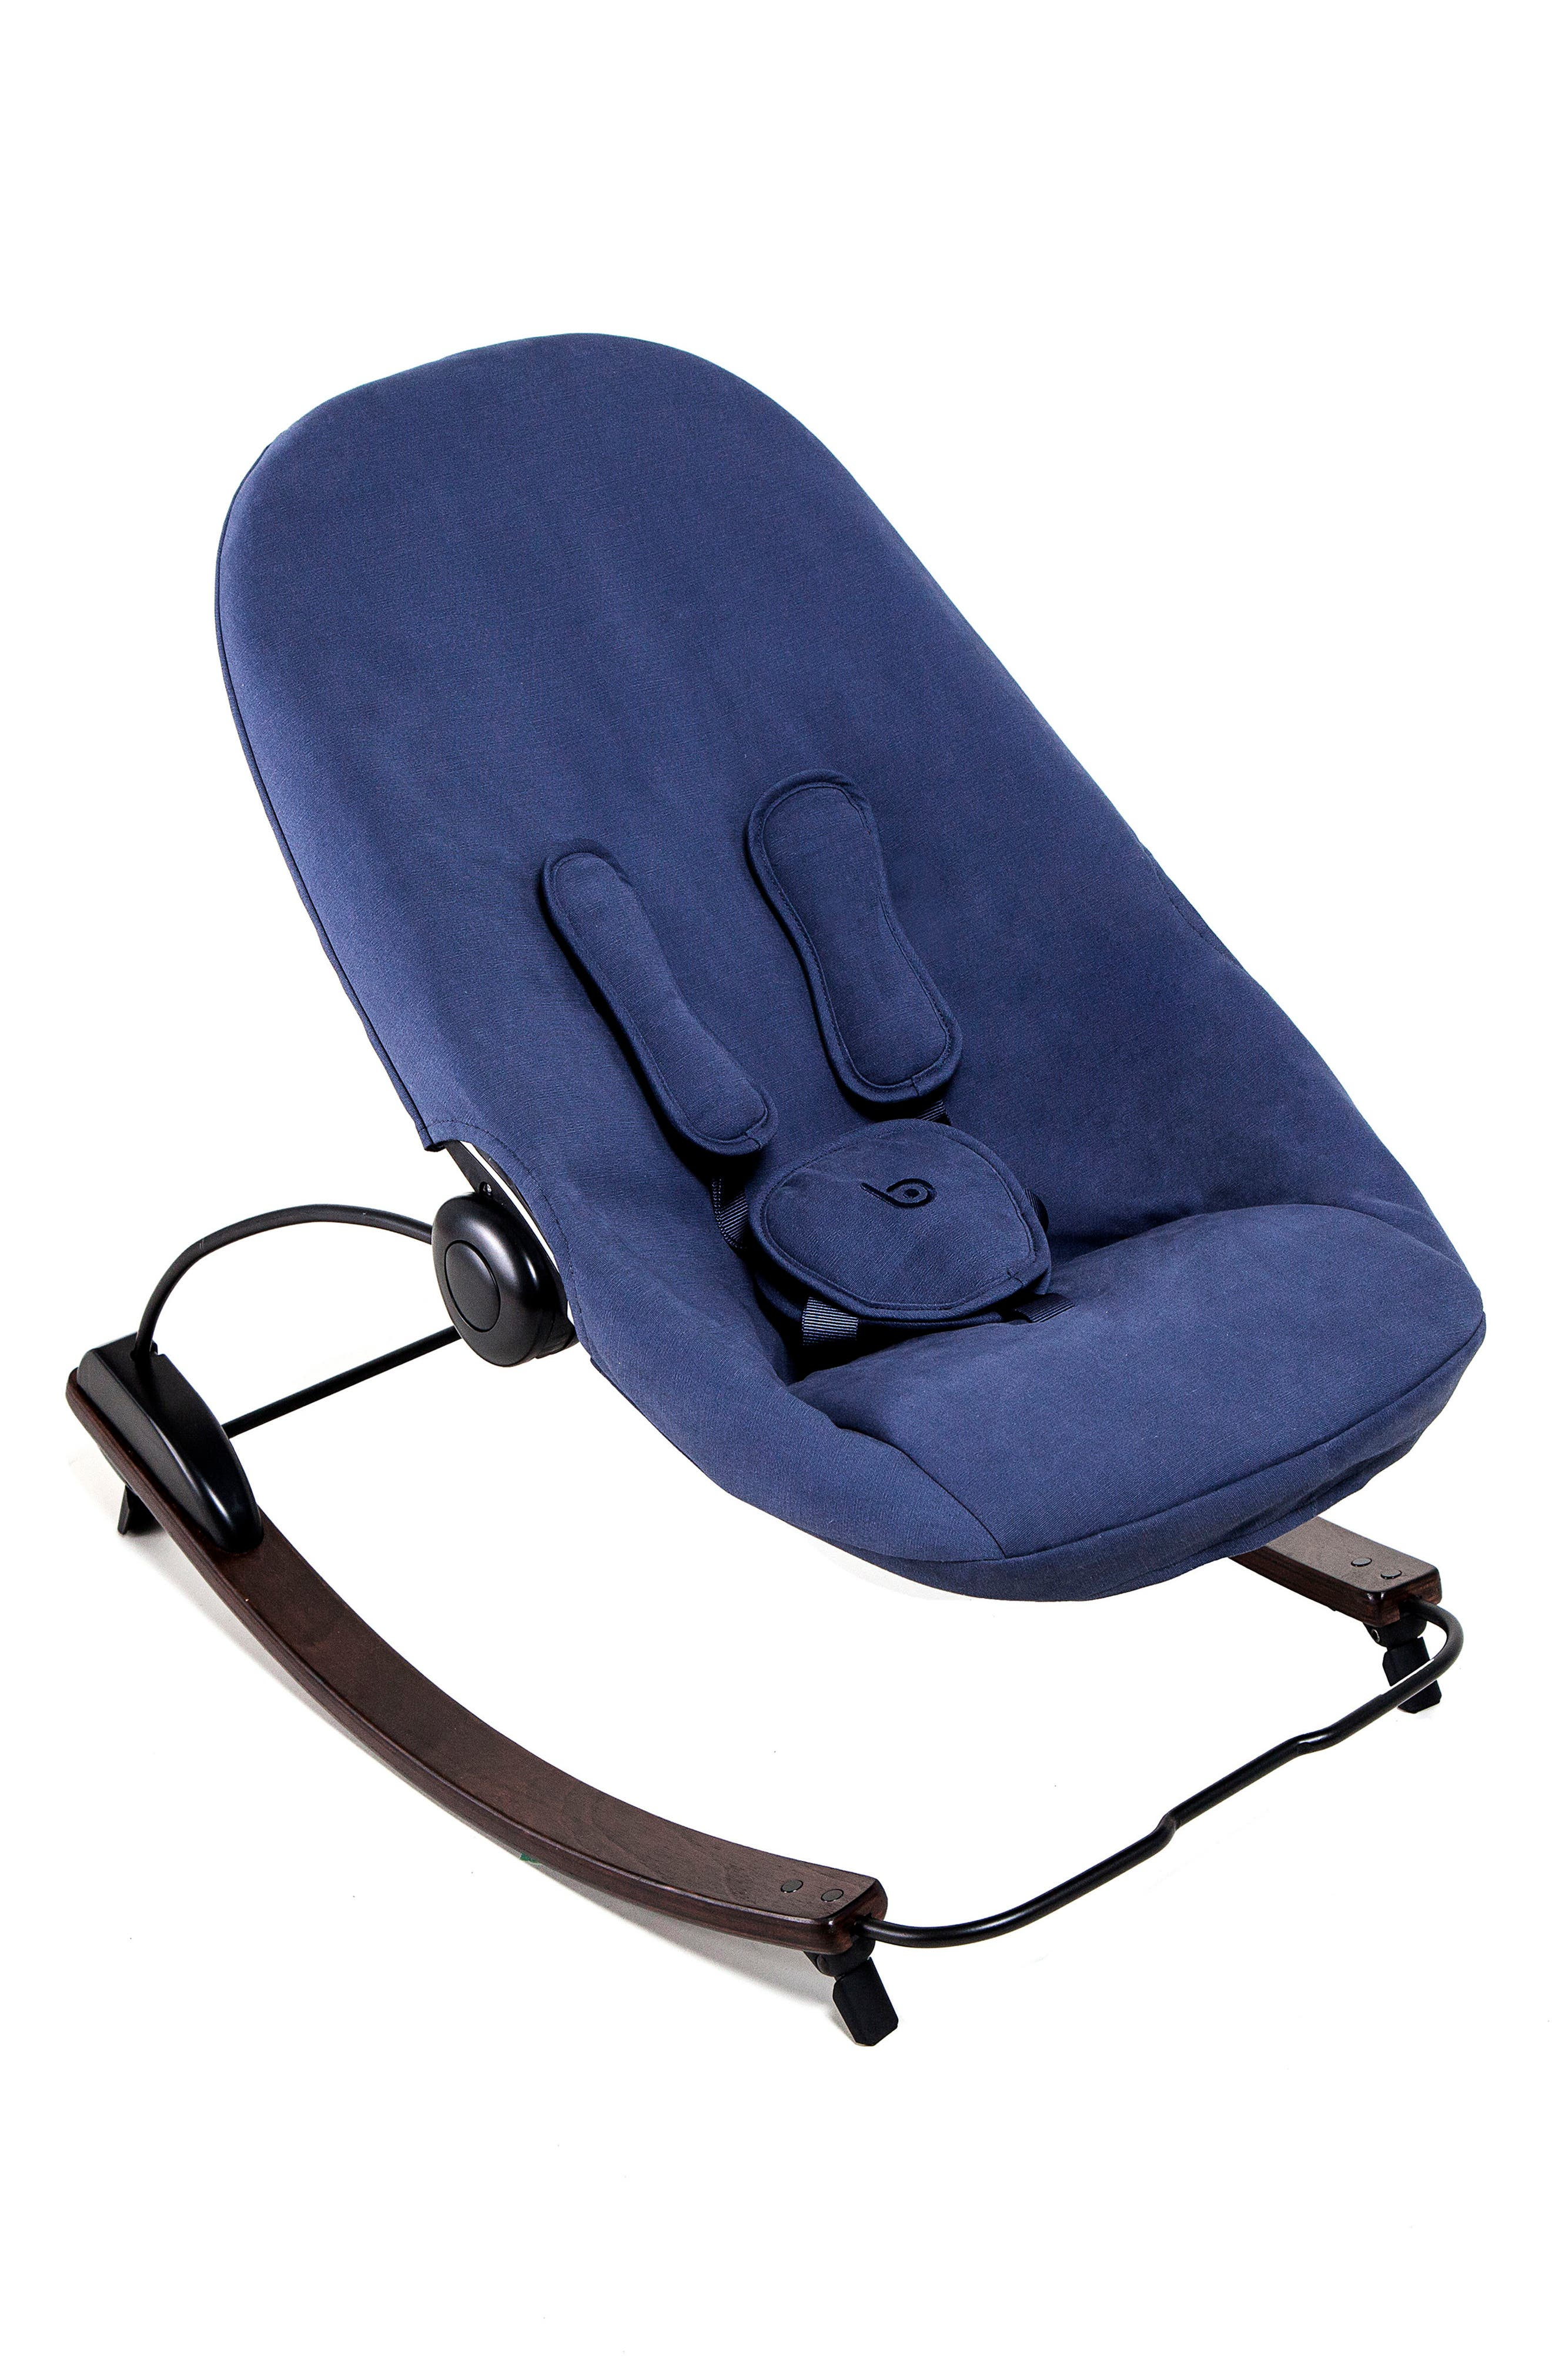 Coco Go 3-in-1 Infant Lounger,                             Main thumbnail 1, color,                             Cappuccino/ Blue